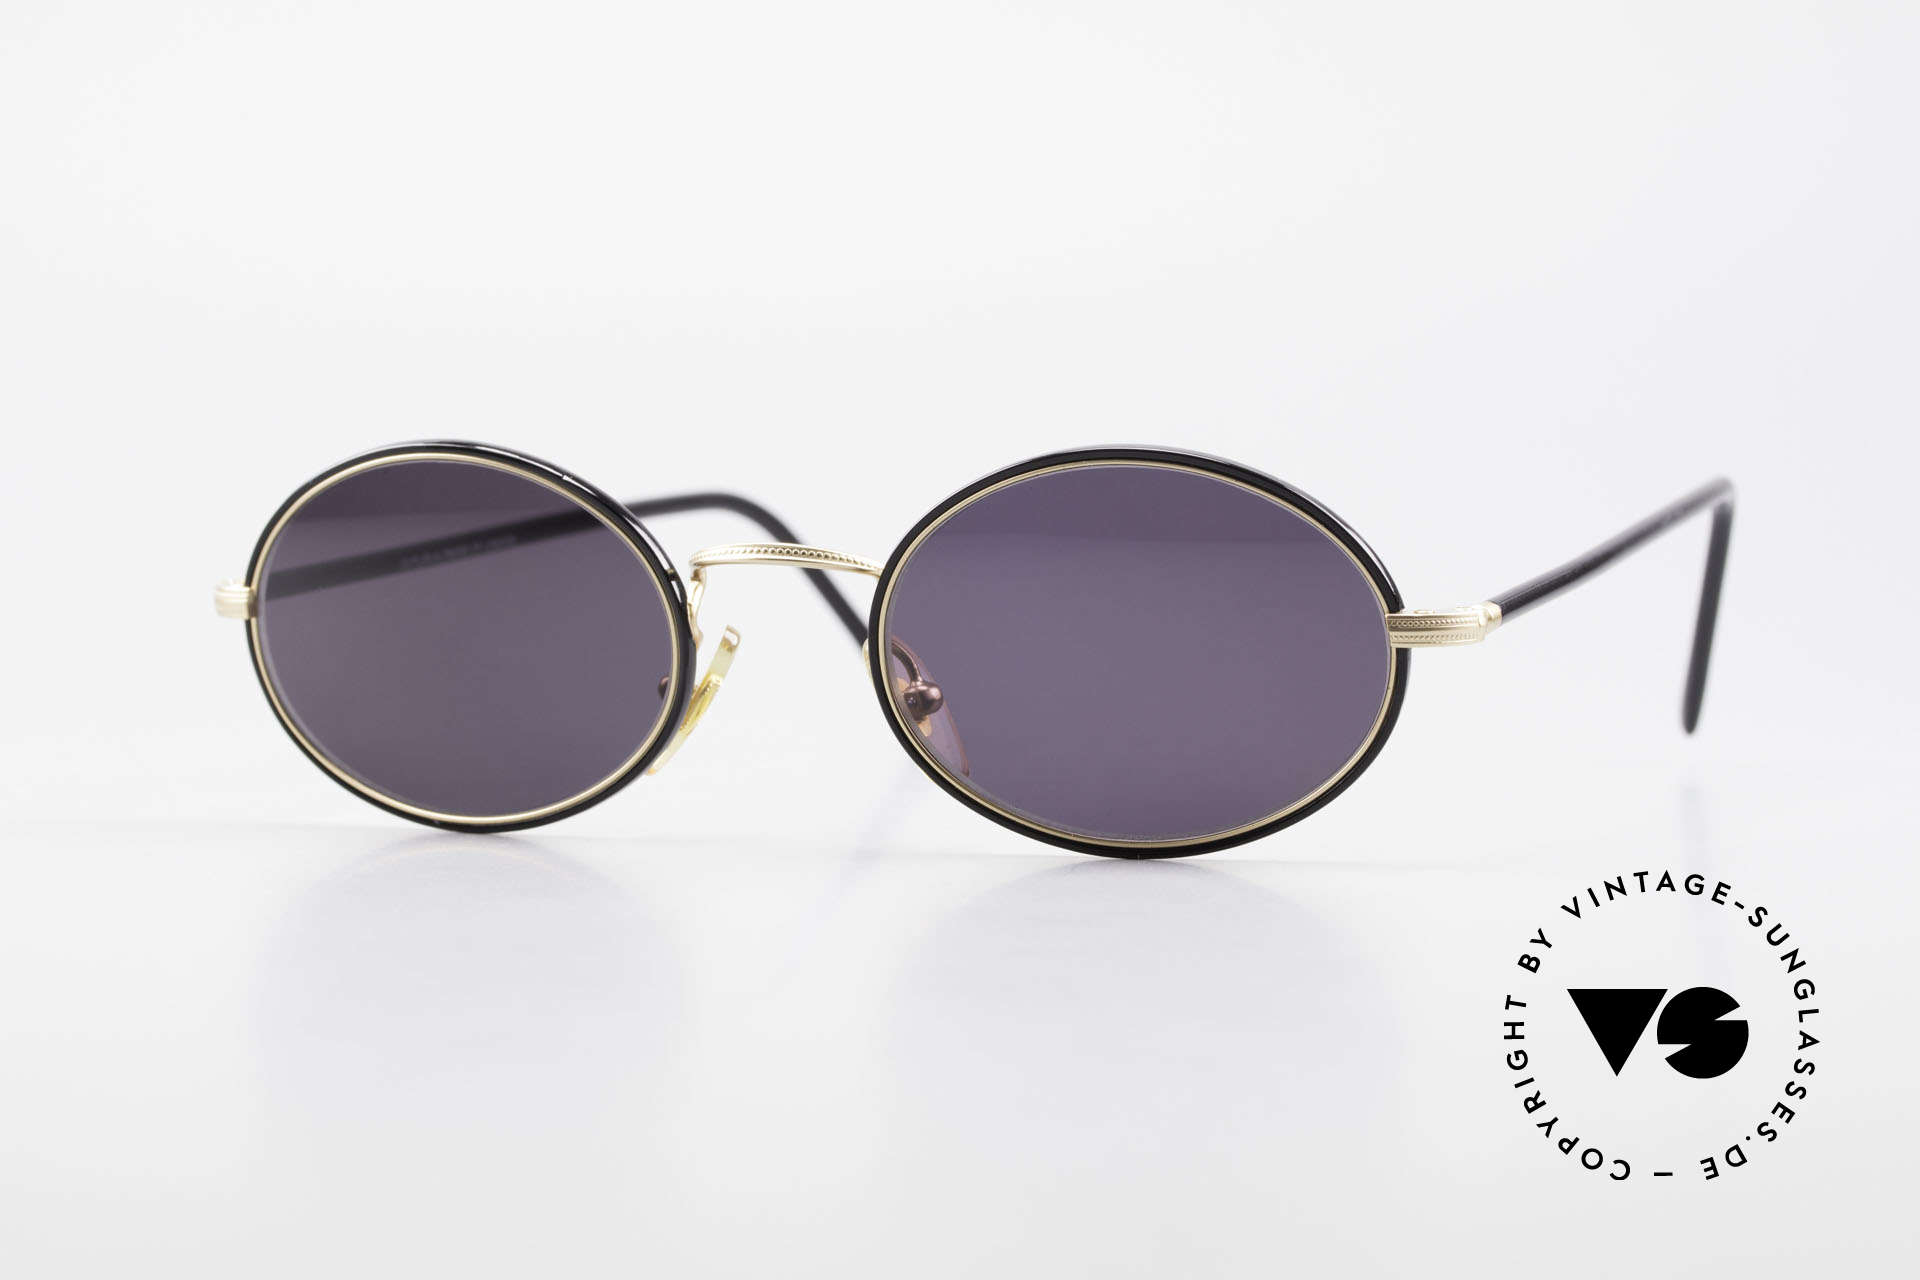 Cutler And Gross 0350 90's Oval Vintage Sunglasses, CUTLER and GROSS designer shades from the late 90's, Made for Men and Women